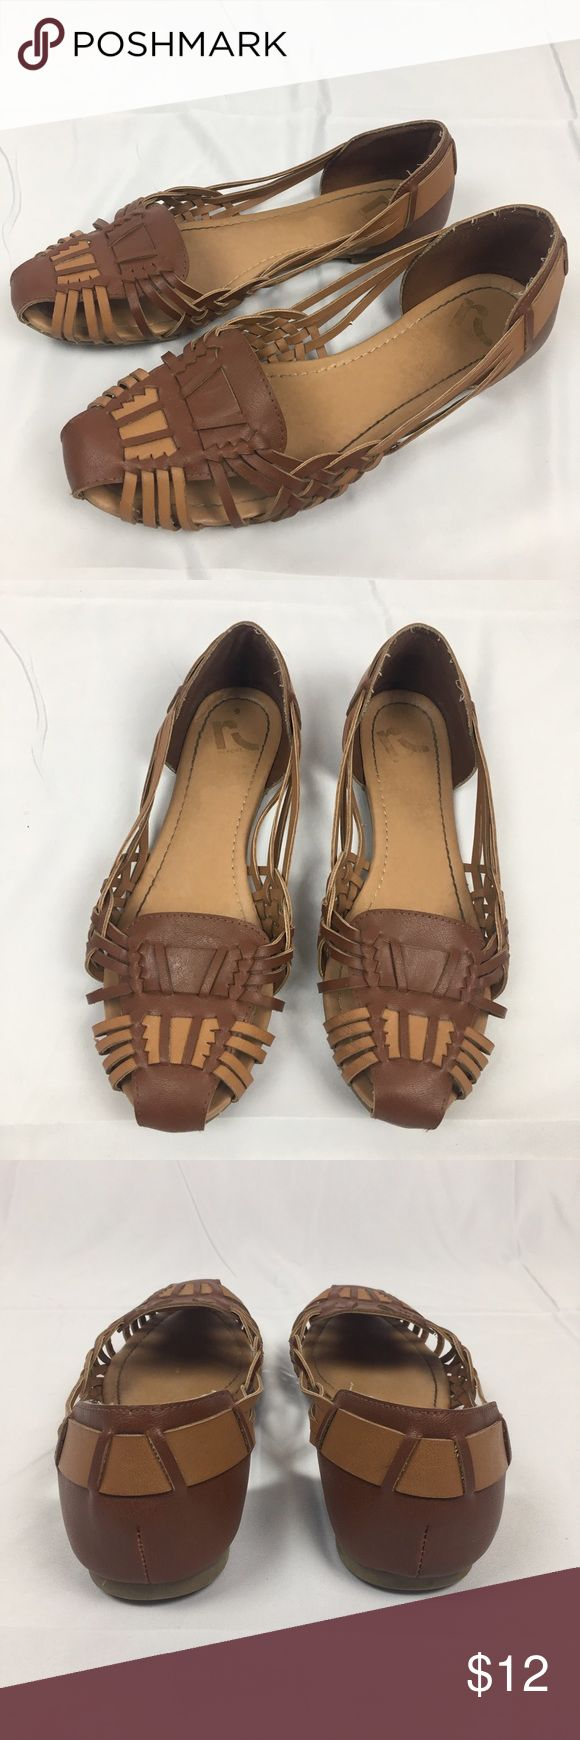 Report Brown Woven Flats Super cute brown woven flats. Size 9.5. In good used condition Report Shoes Flats & Loafers